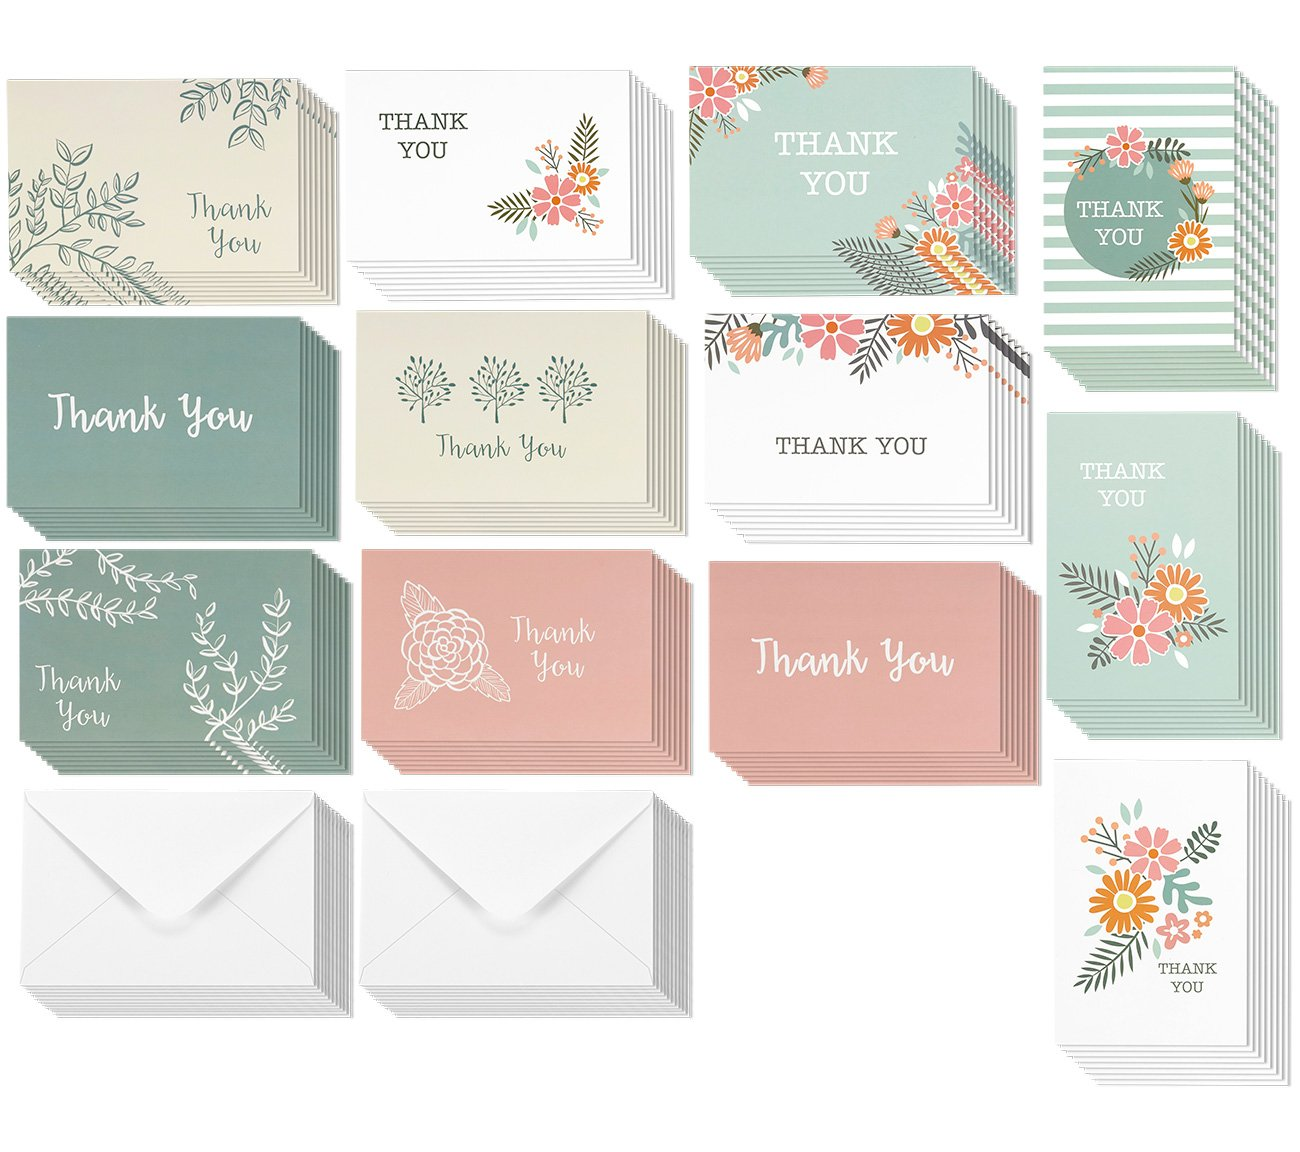 Thank You Cards - 96-Pack Thank You Notes, 12 Assorted Colorful Designs for Her, Bulk Thank You Cards and Envelopes, 4 x 6 Inches